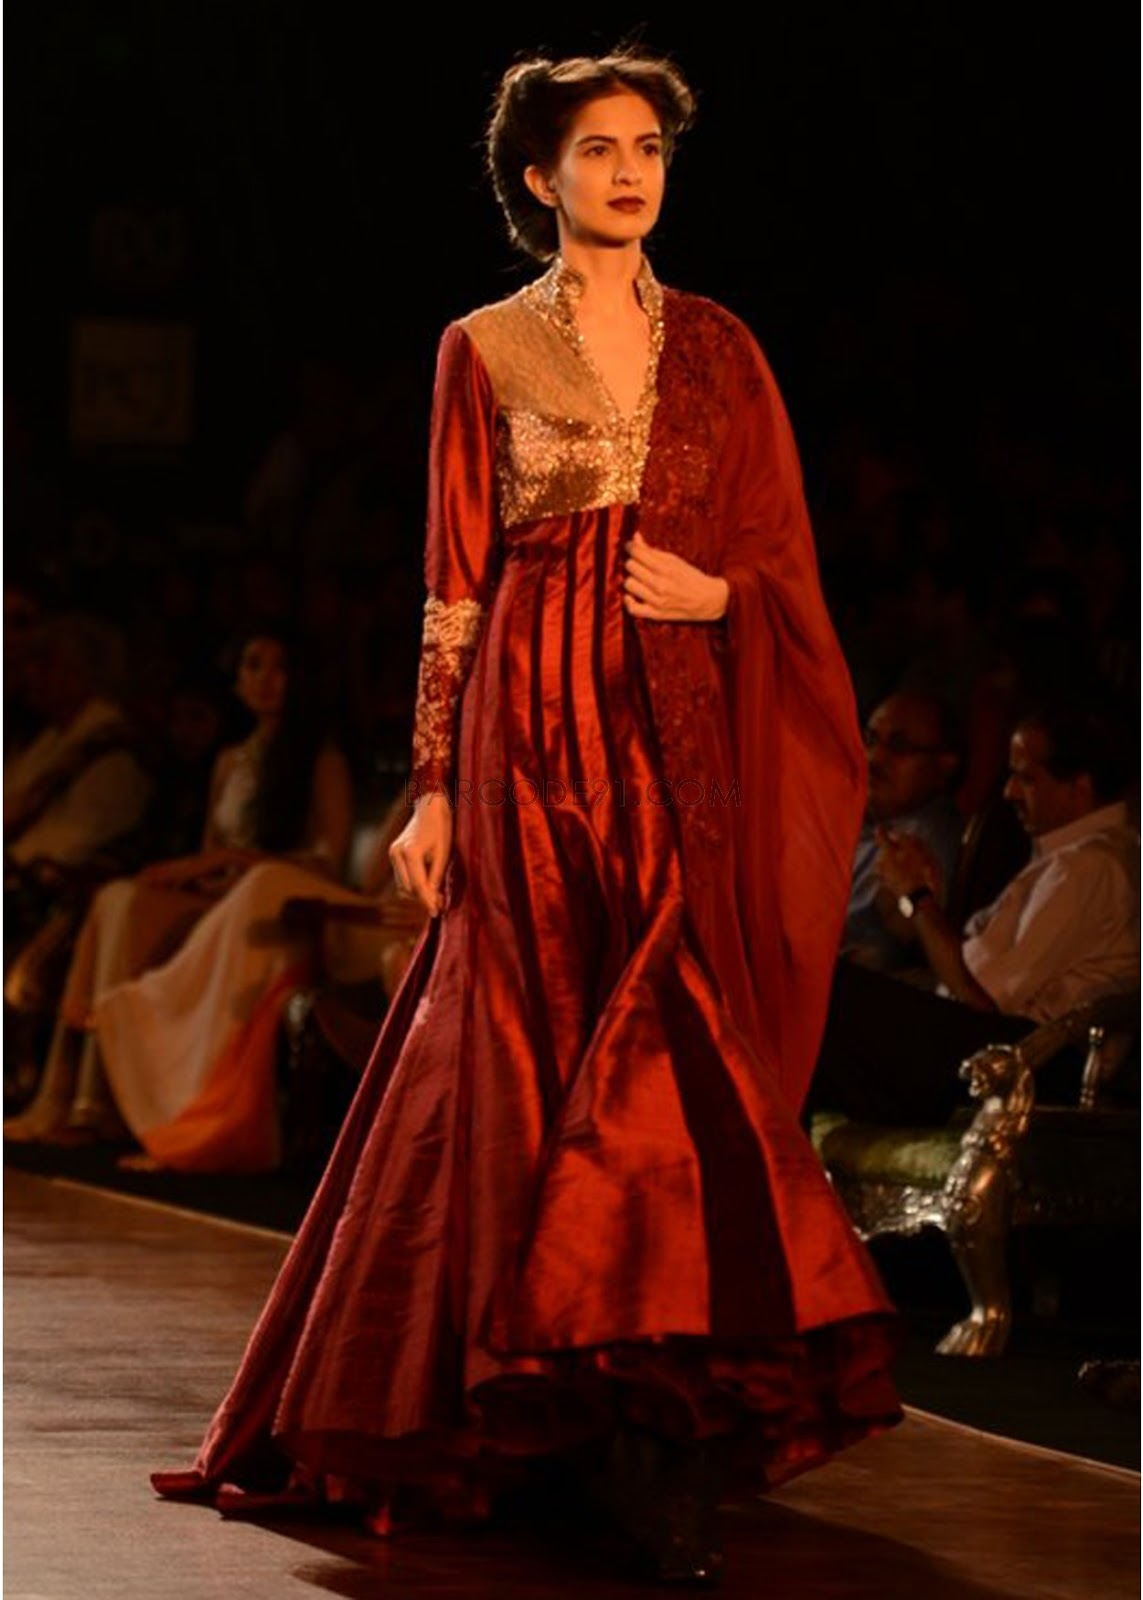 manish malhotra collection delhi couture week pcj ethnic bythe heavy silhouettes inspired anarkali latest dresses pm dress sarees